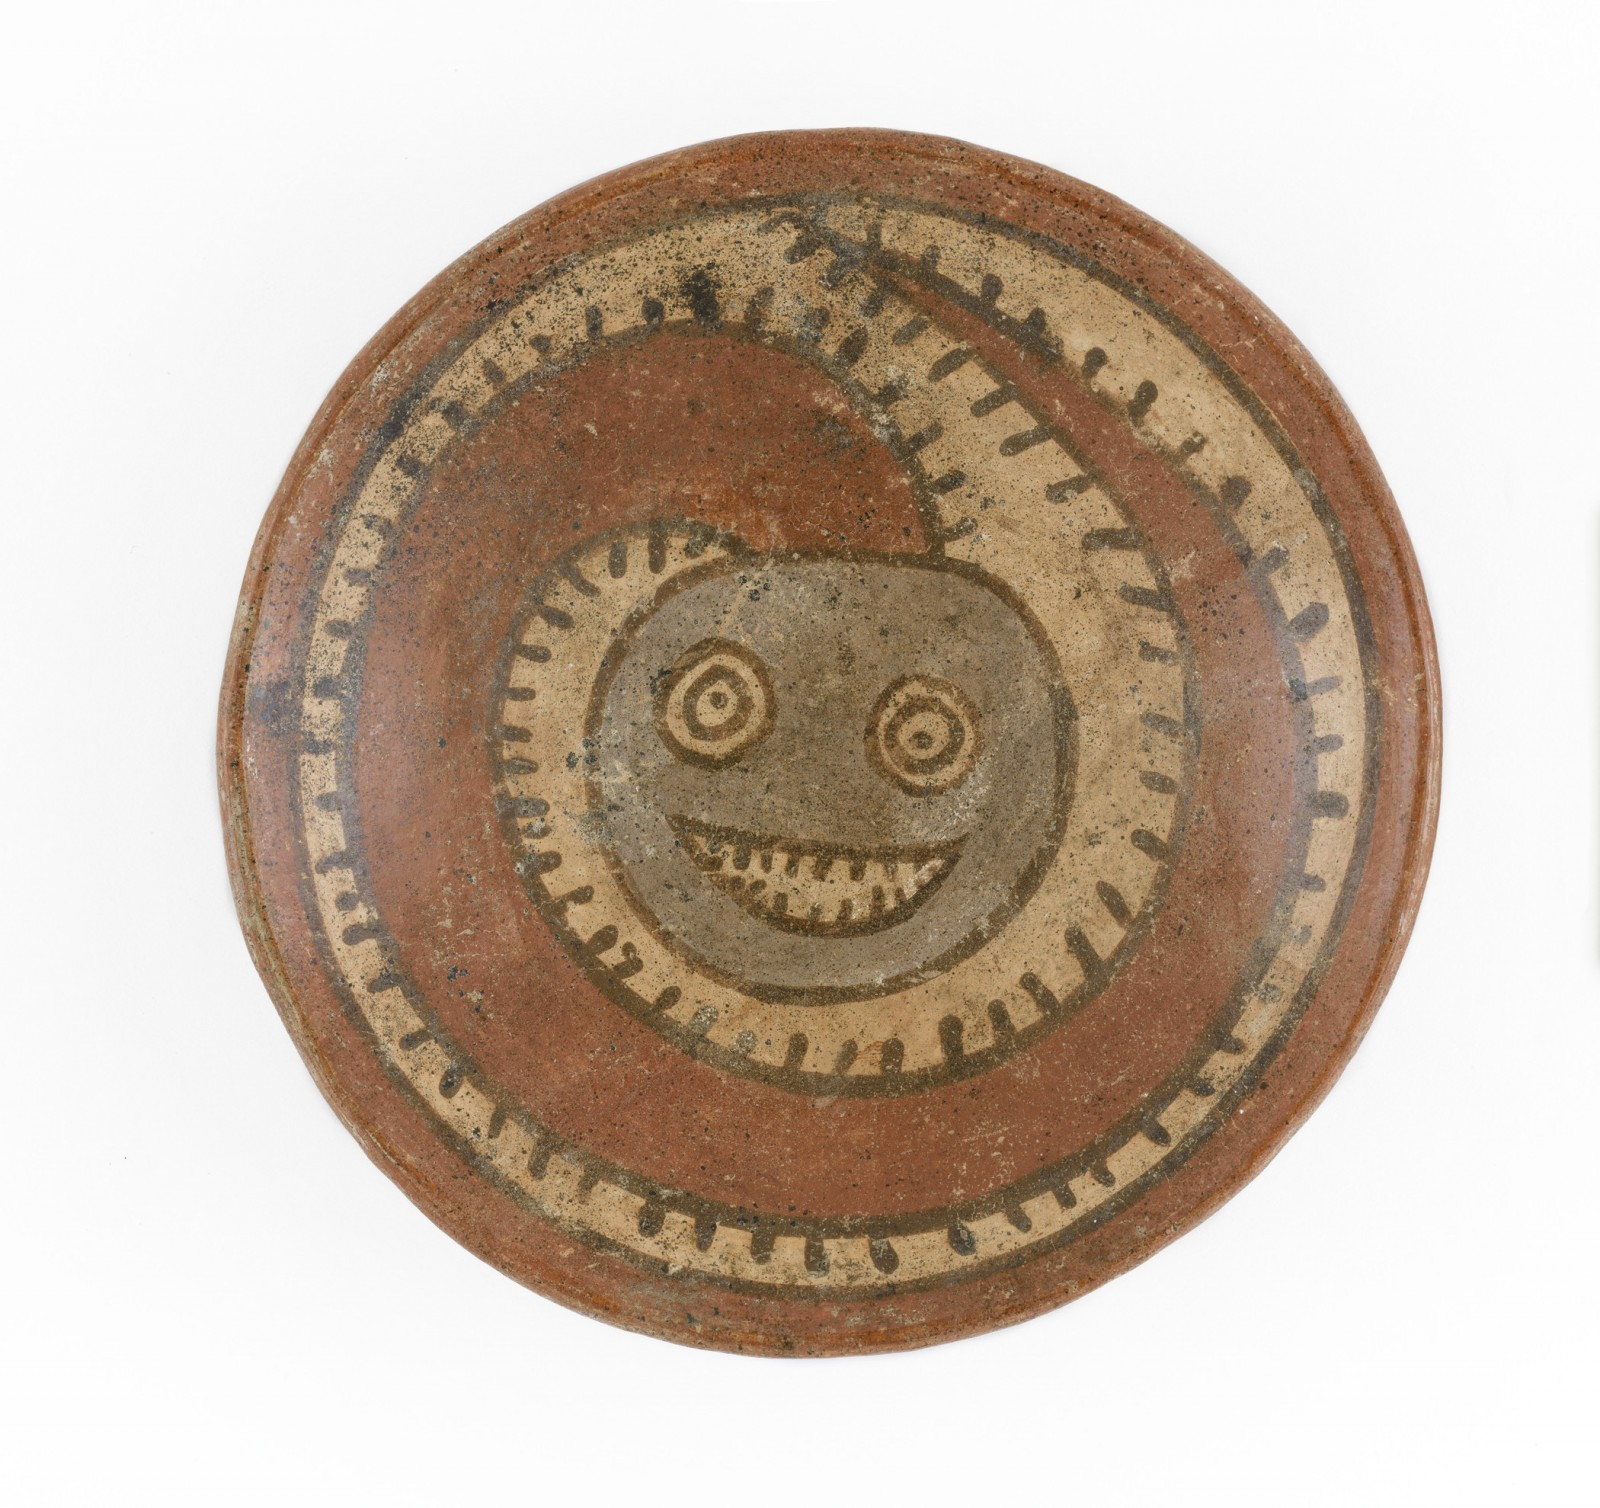 Image: Plate with Smiling Serpent, Millipede, or Tadpole Creature, Panama, Conte Style, 600–800 CE